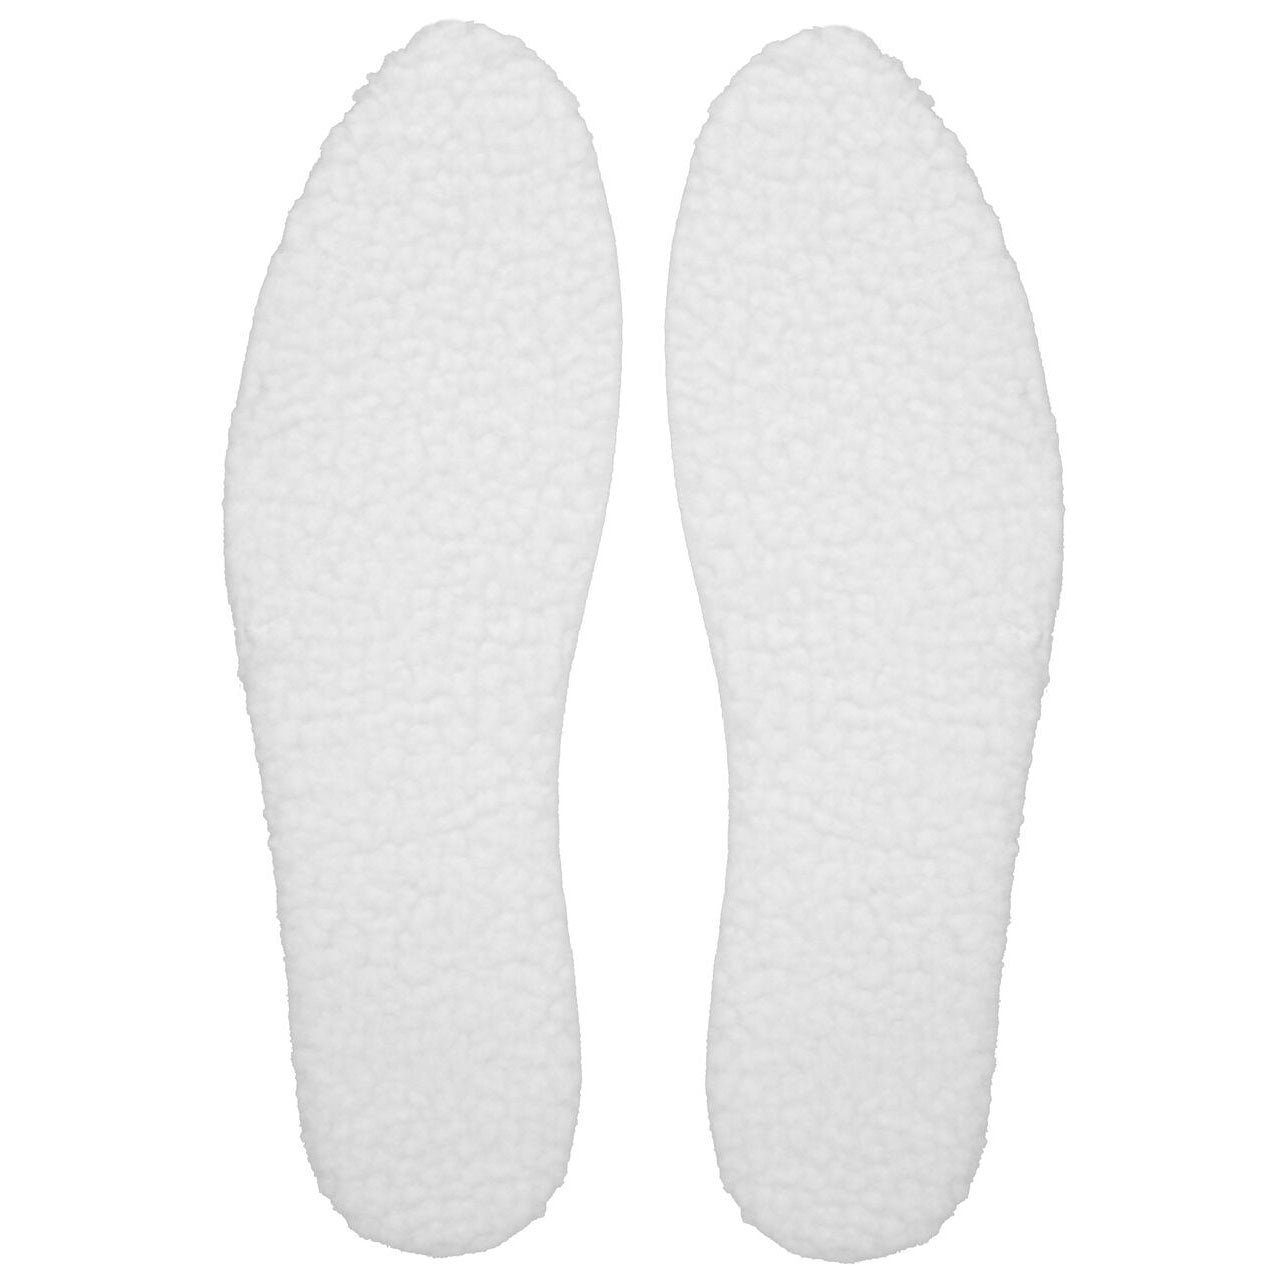 2-Pairs: Unisex Sherpa Thermal Insoles